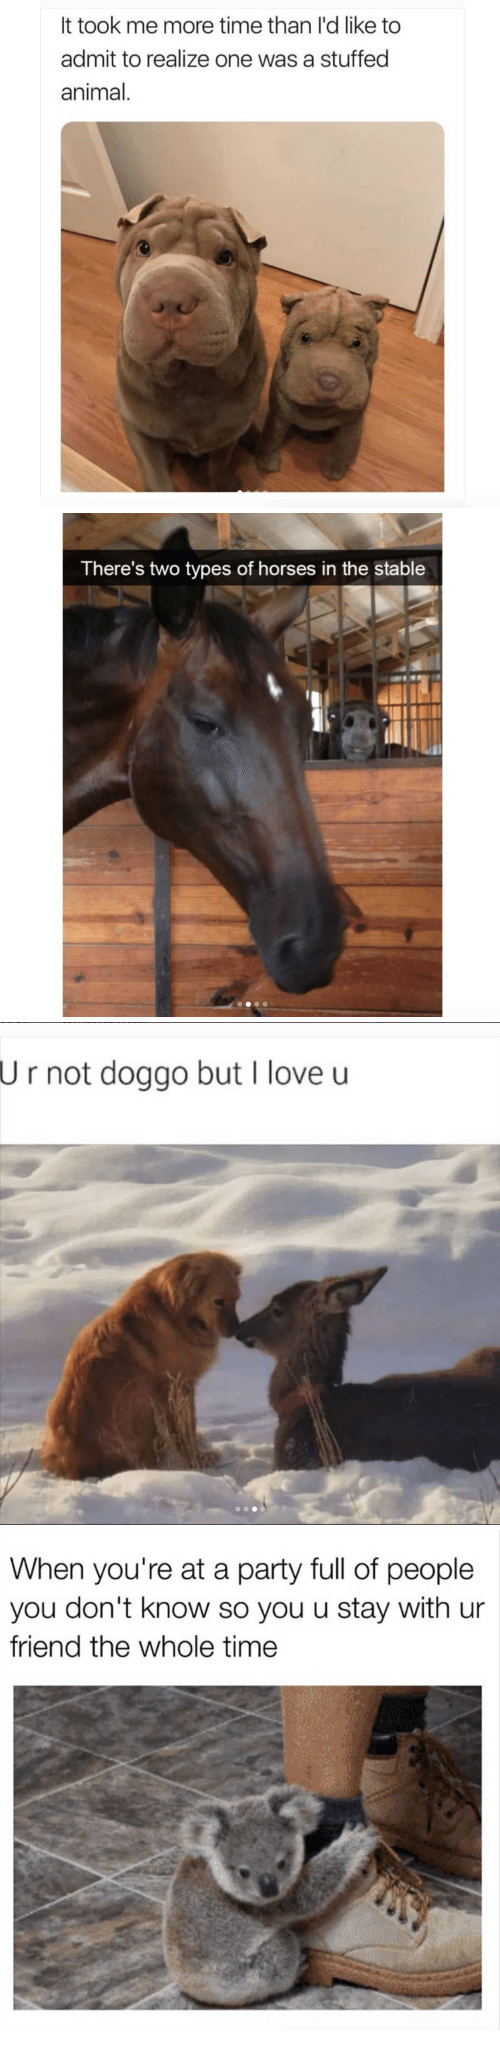 Horses, Love, and Party: It took me more time than l'd like to  admit to realize one was a stuffed  animal.   There's two types of horses in the stable   U  r not doggo but I love u   When you're at a party full of people  you don't know so you u stay with ur  friend the whole time